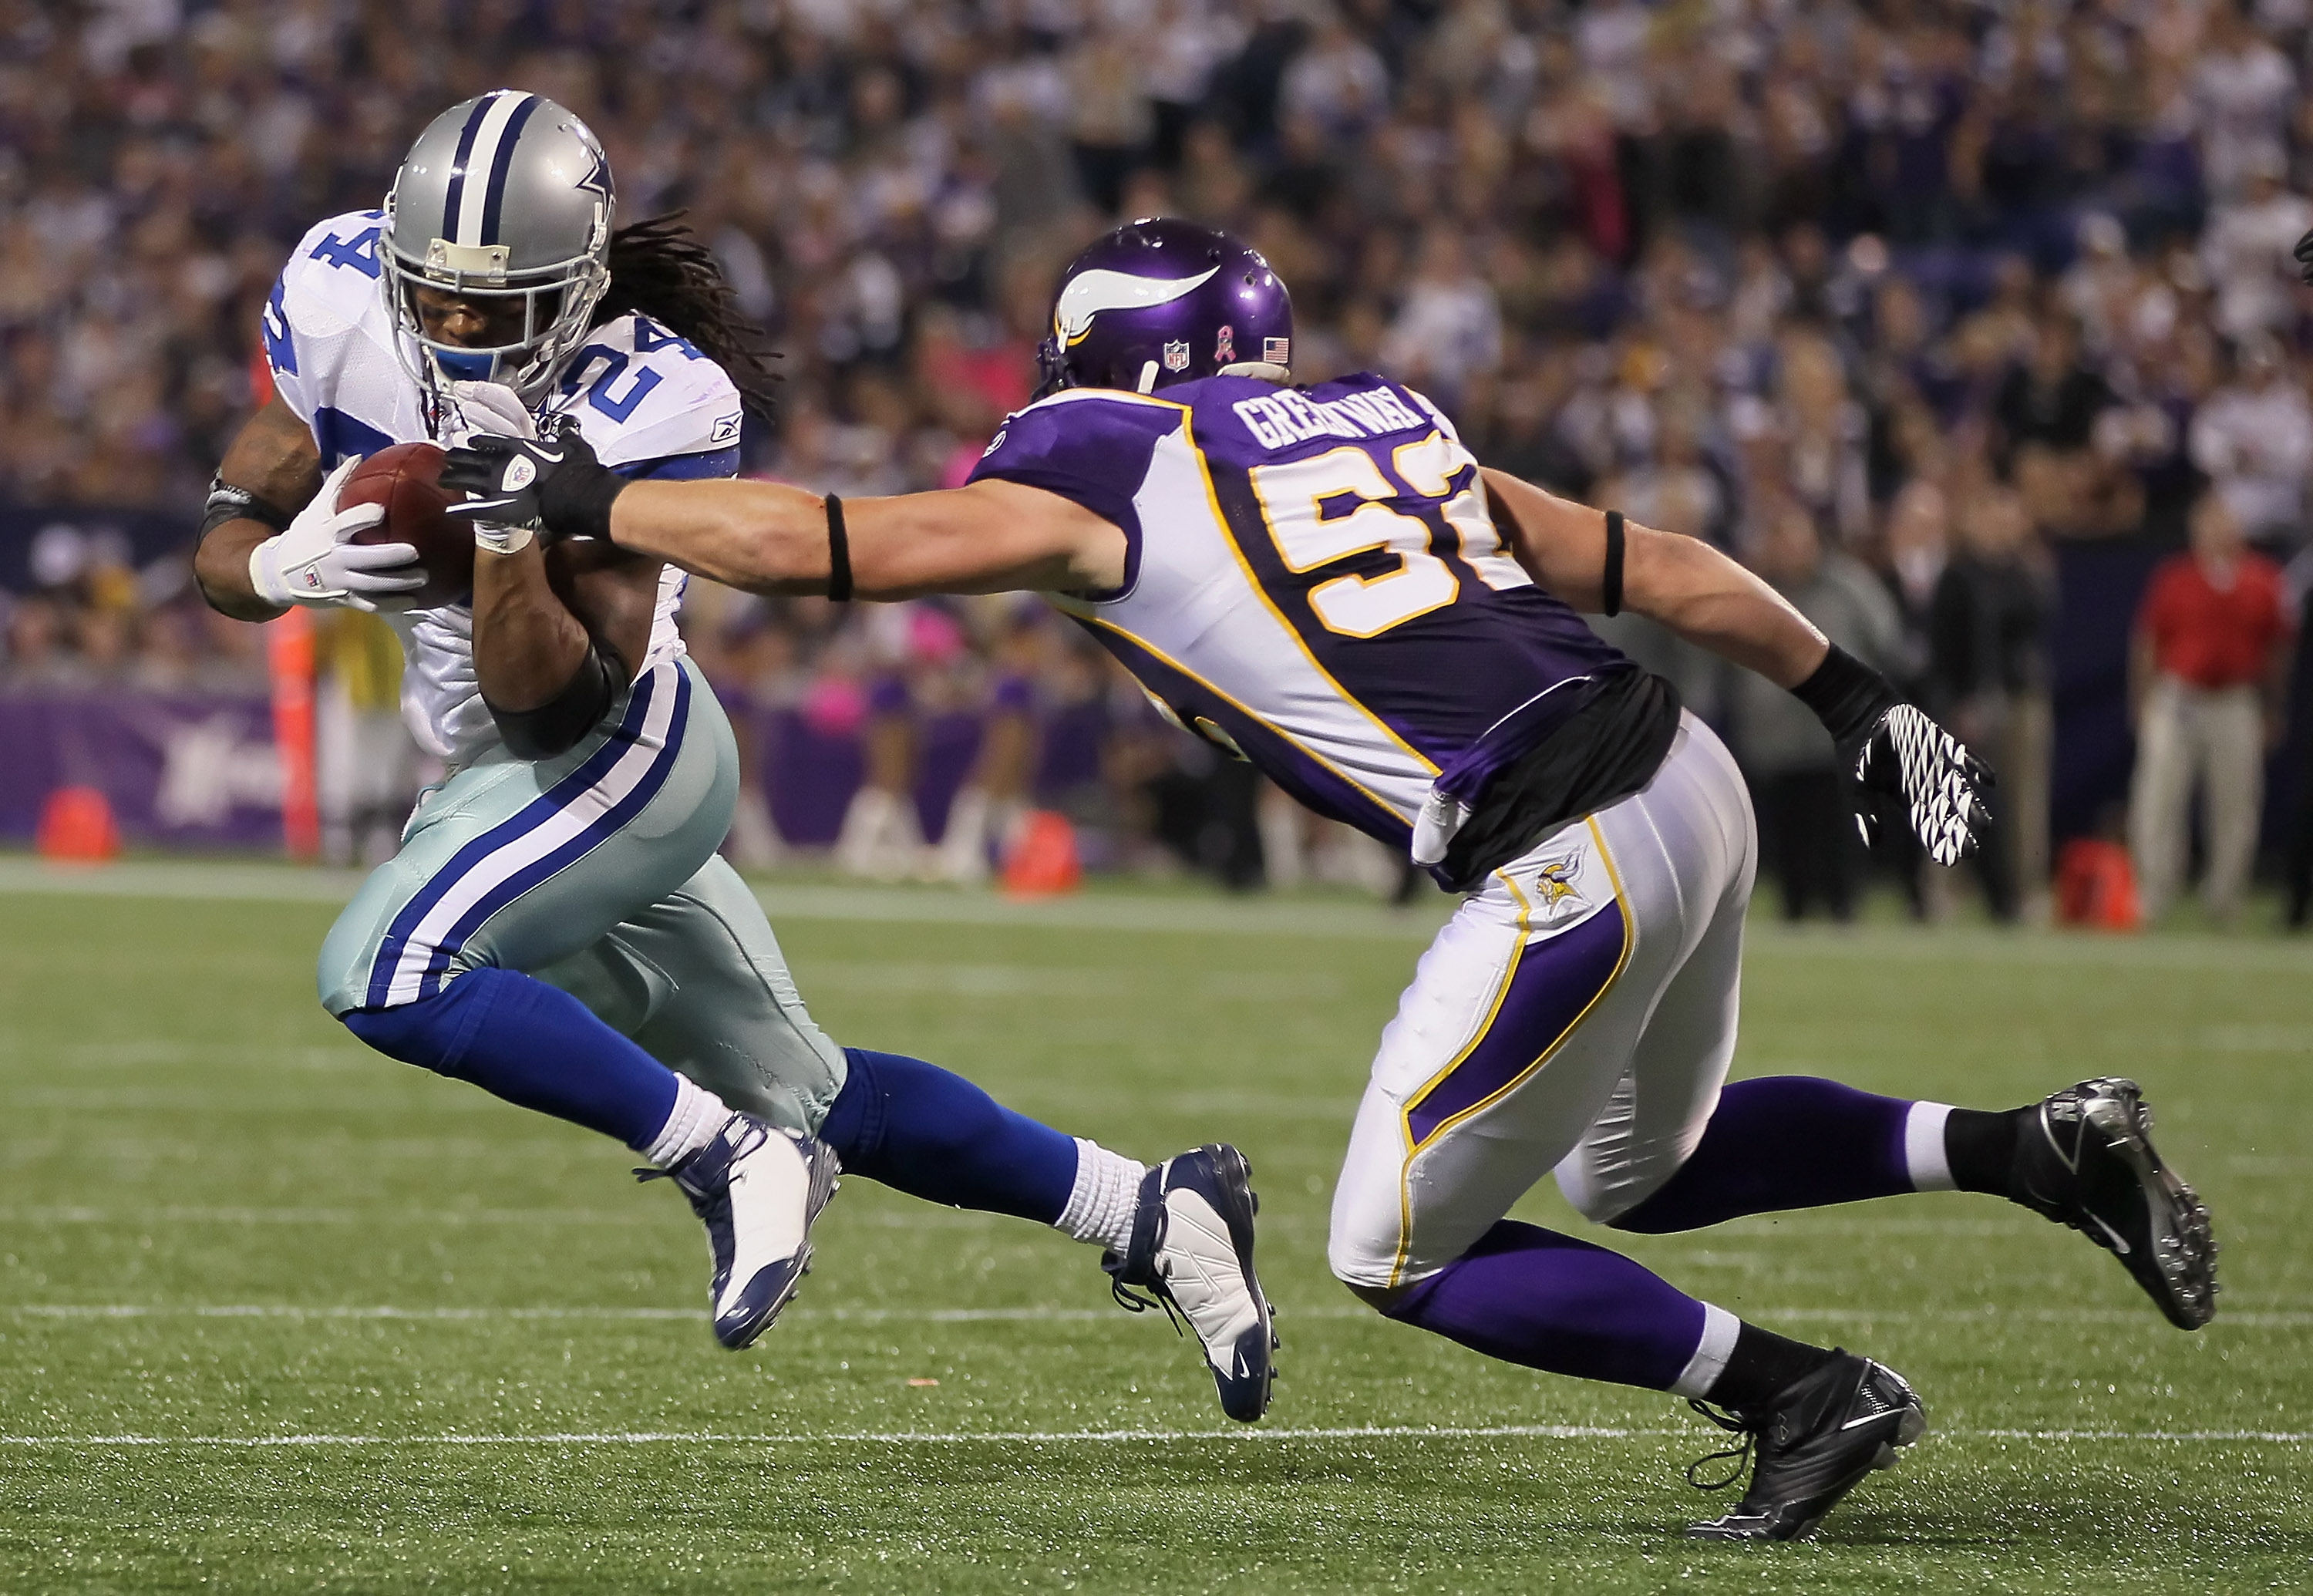 7ee99f5e2e1 MINNEAPOLIS - OCTOBER 17: Running back Marion Barber #24 of the Dallas  Cowboys is